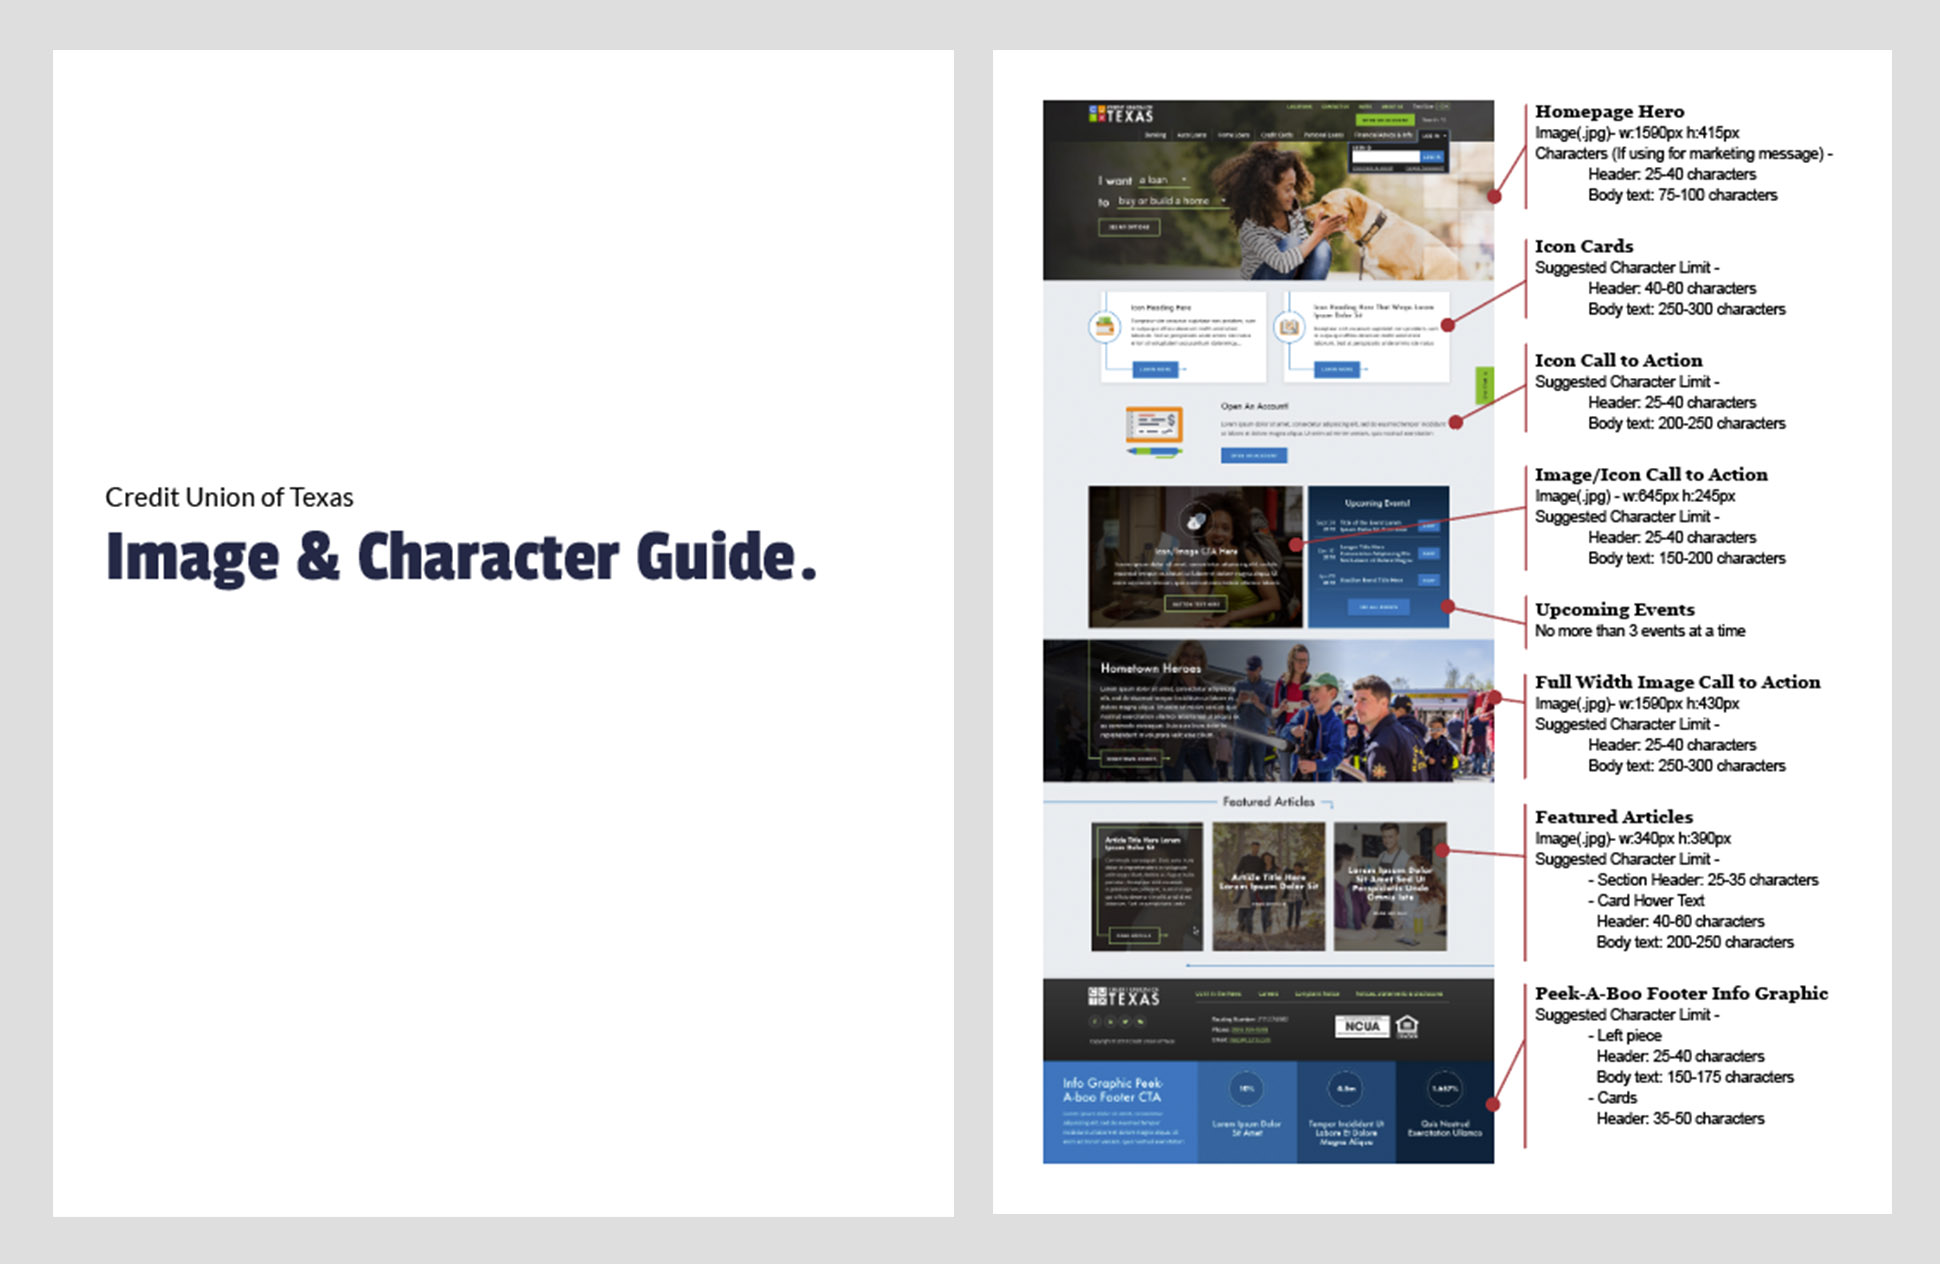 Image and Character Guide to help with content deployment efforts.